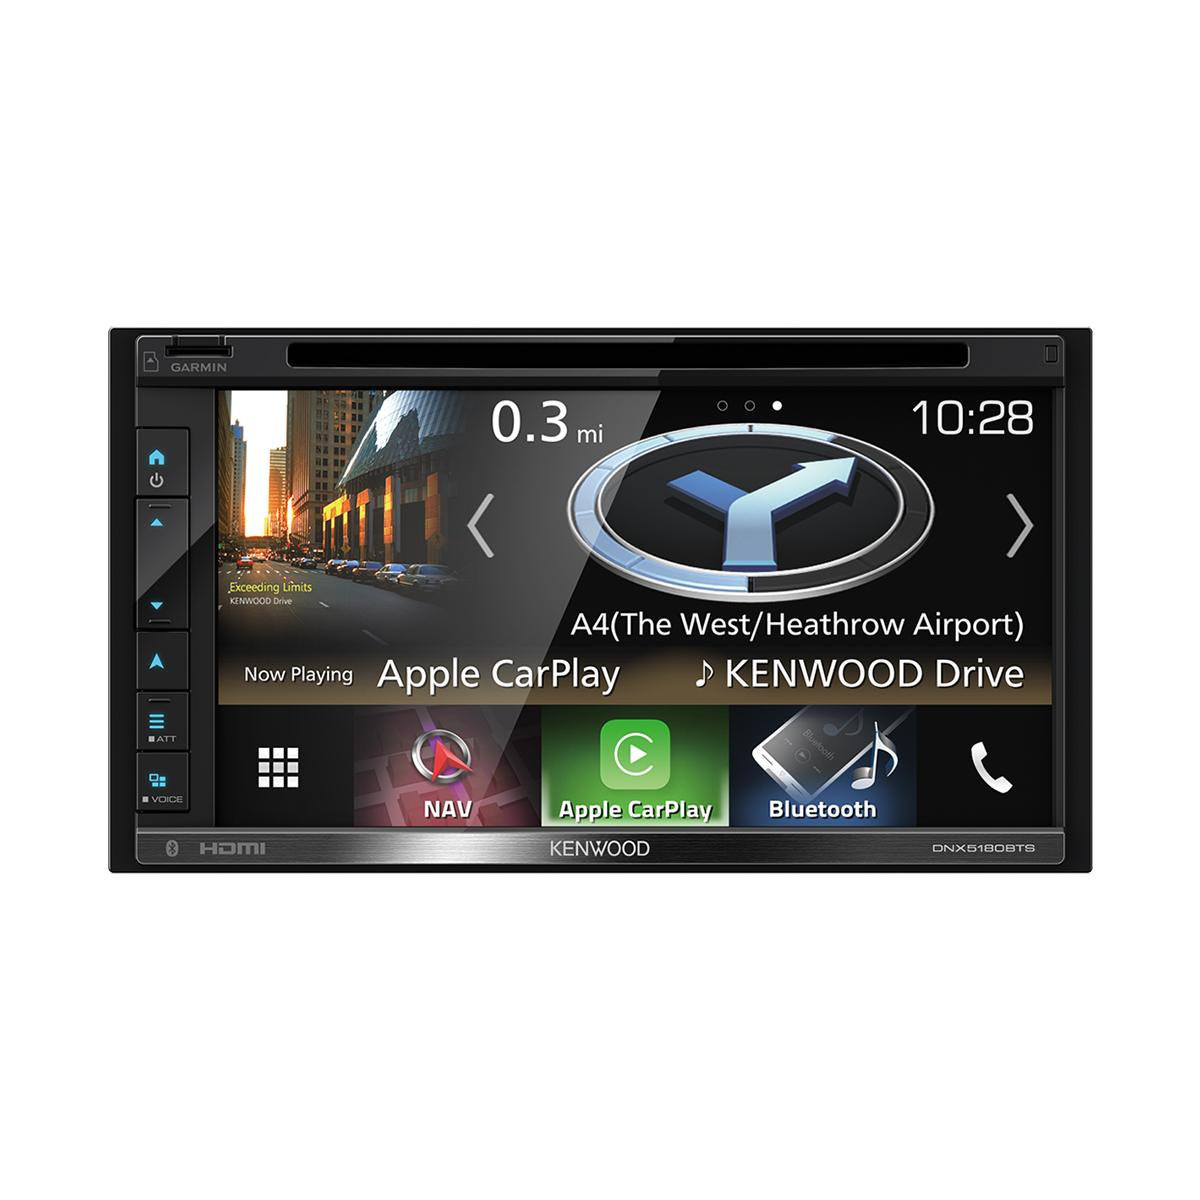 In Car Sat Nav Kenwood Car Audio DNX-5180BTS 1